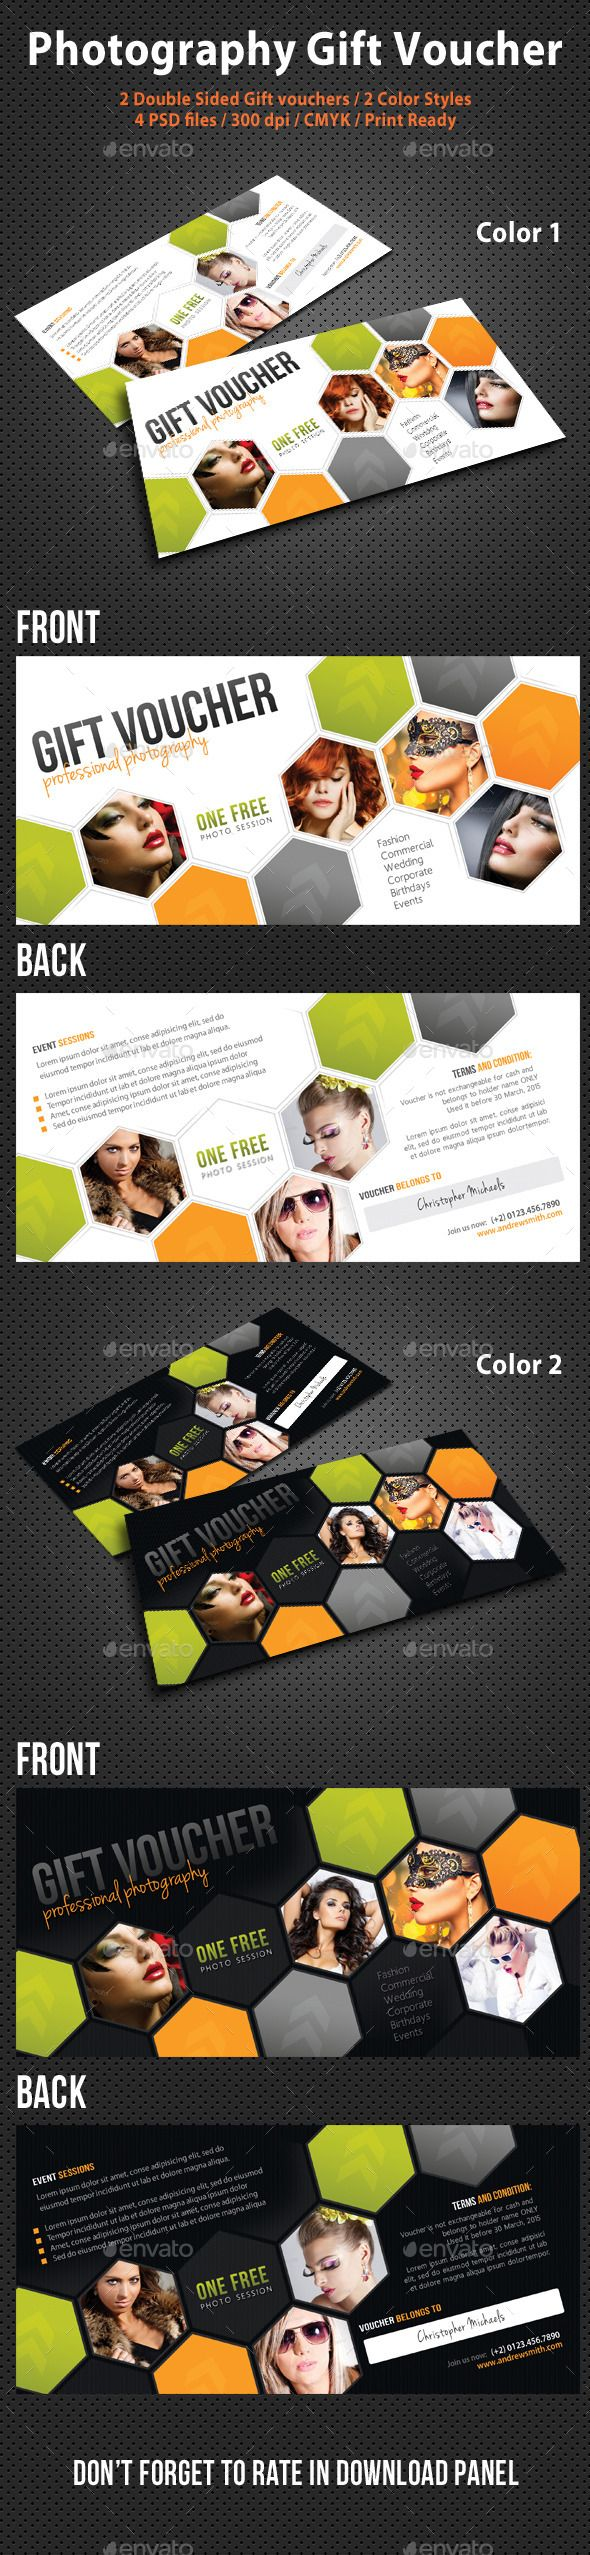 23 best gift certificate images on pinterest graphics draw and photography studio gift voucher xflitez Images